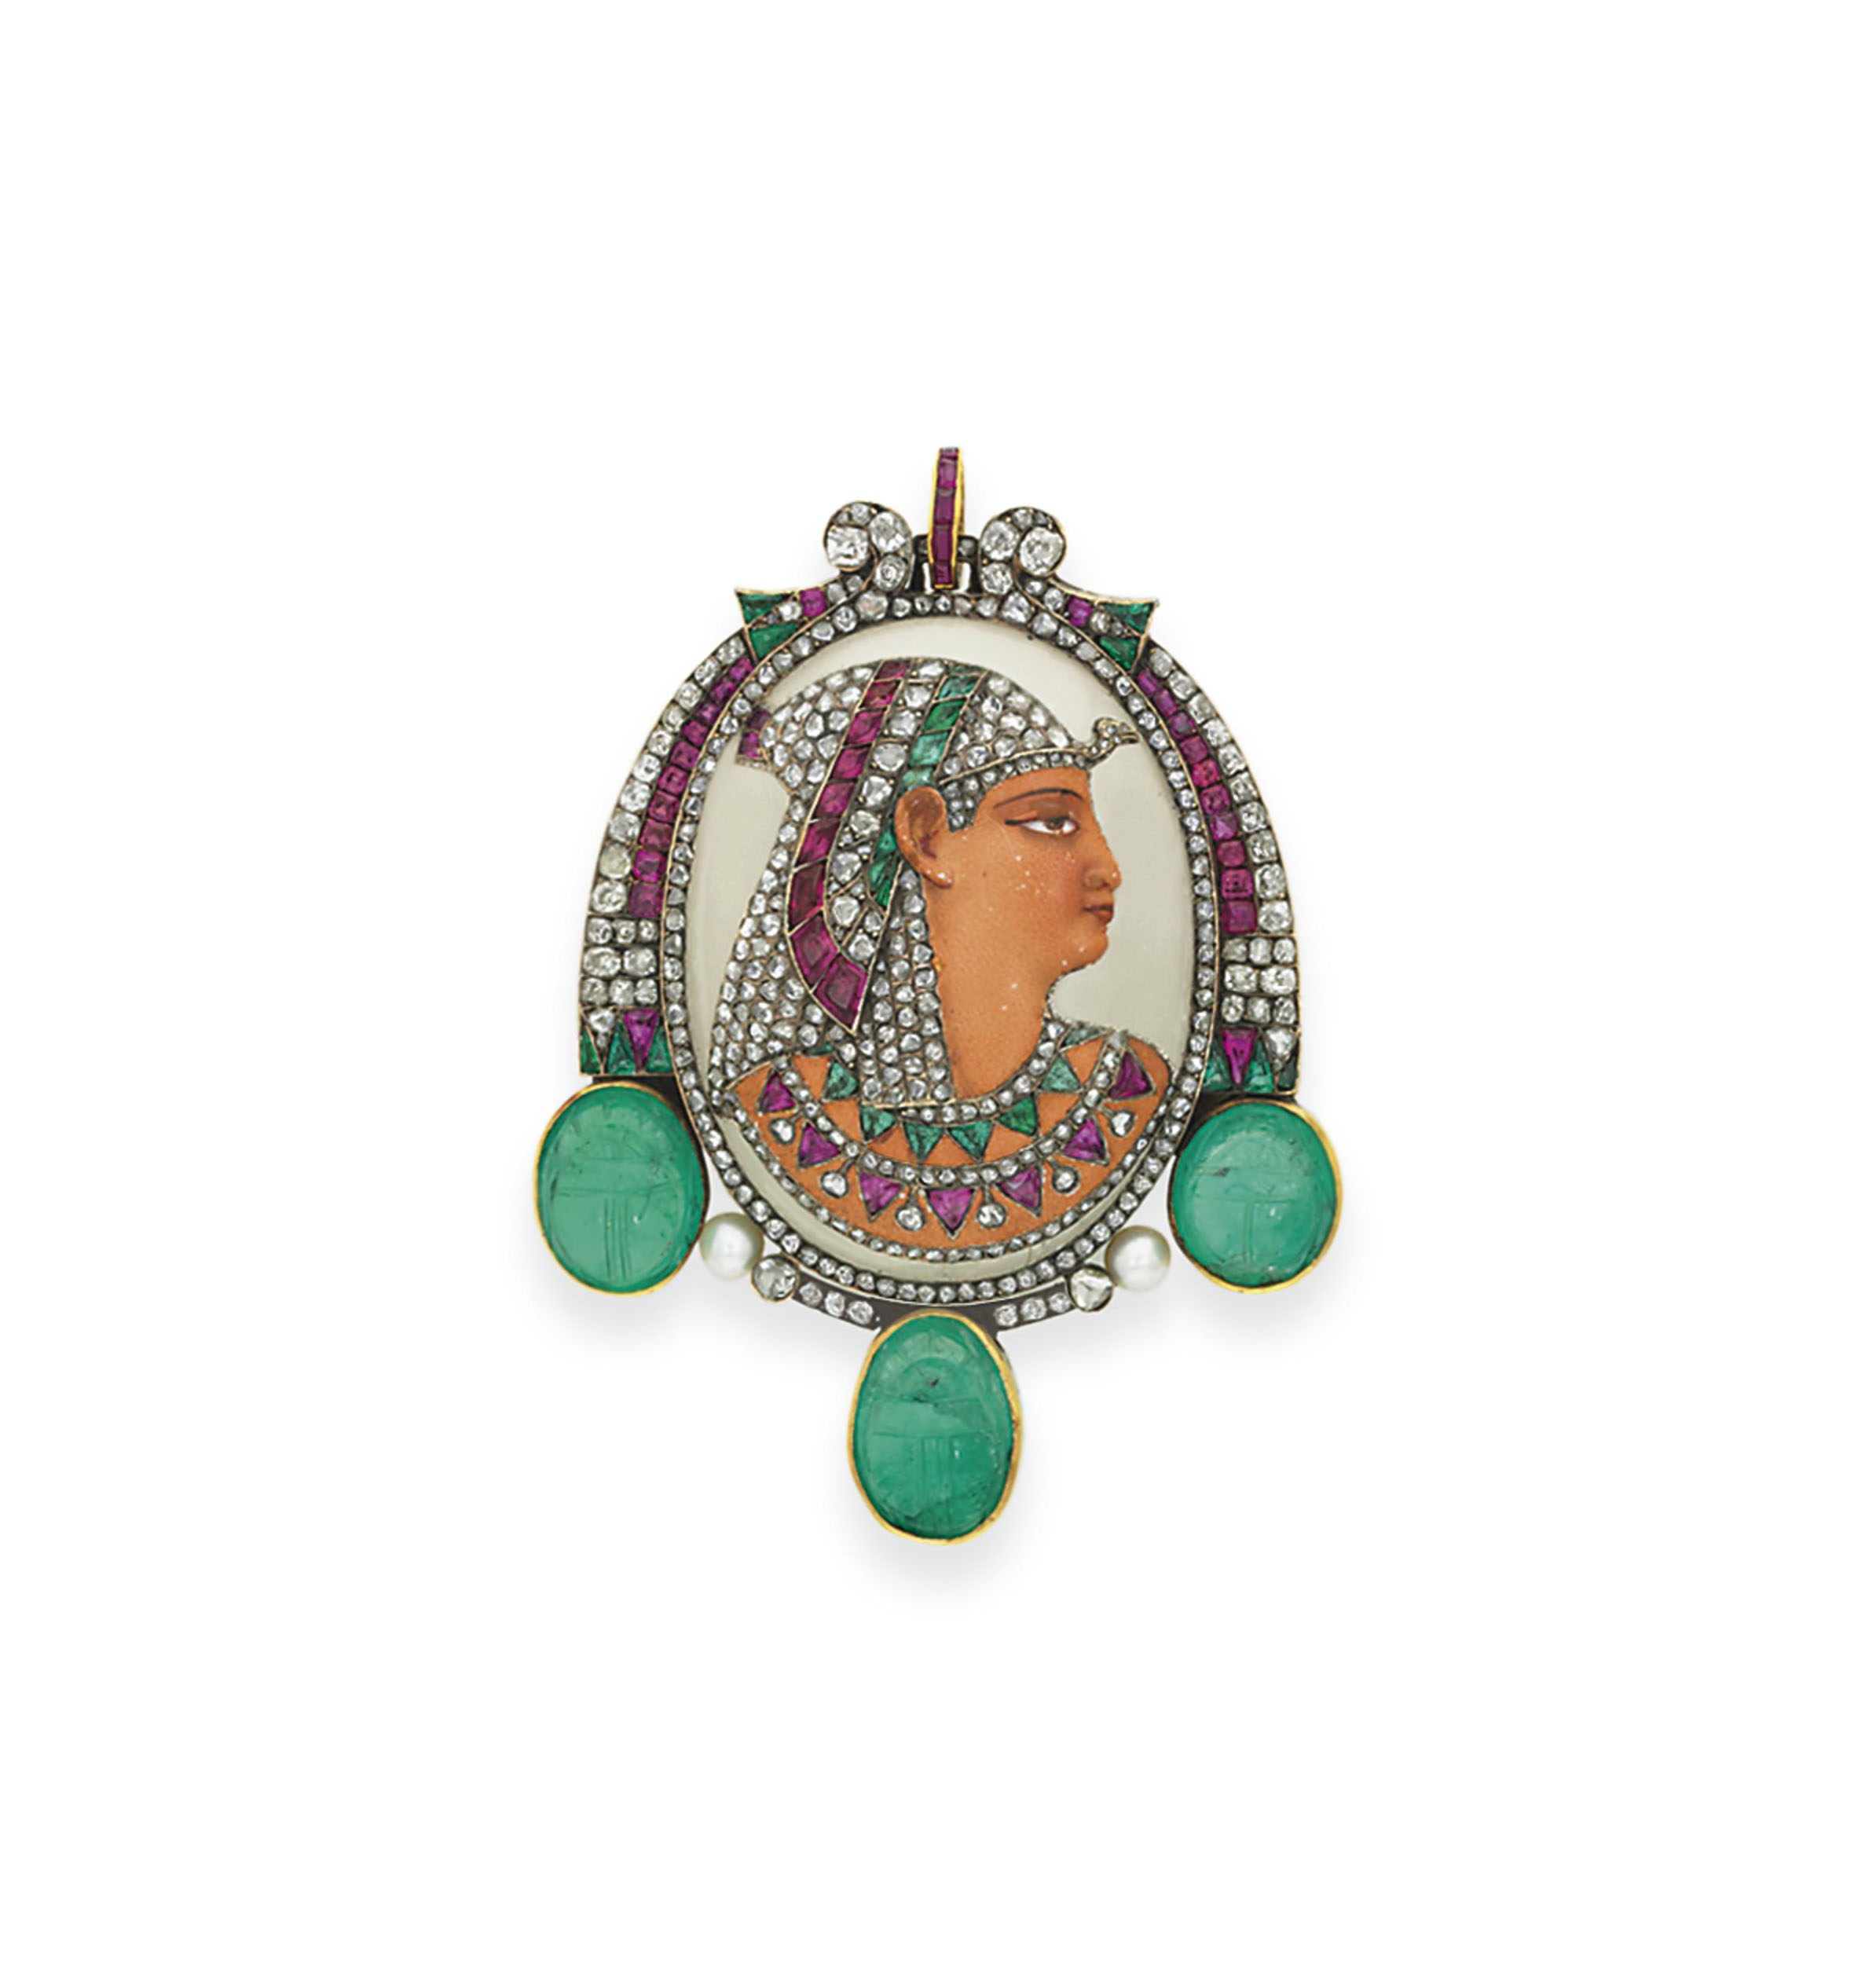 AN EGYPTIAN-REVIVAL MULTI-GEM 'PHARAOH' BROOCH, BY GUSTAVE BAUGRAND